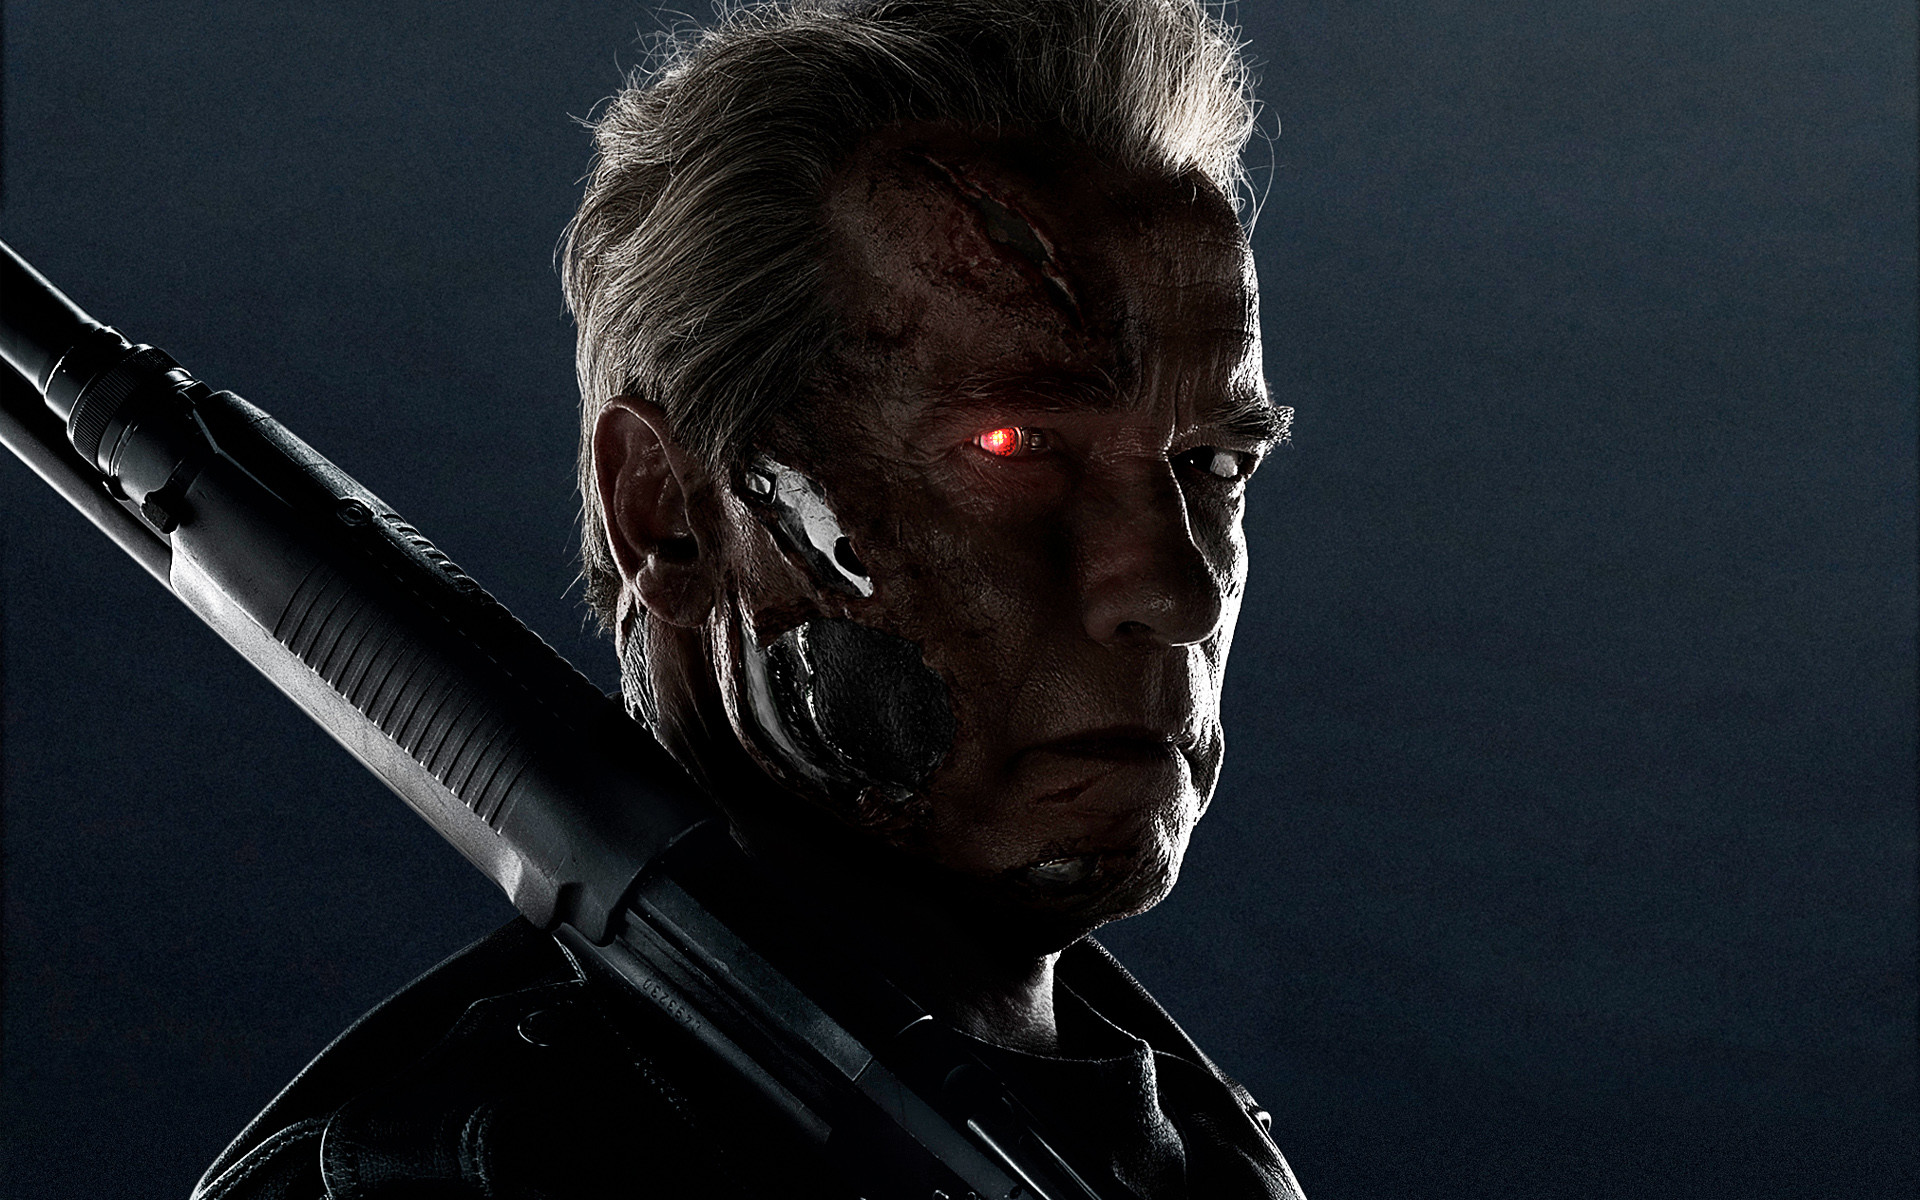 1920x1200 Terminator Genisys HD Wallpaper | Hintergrund |  | ID:615699 -  Wallpaper Abyss